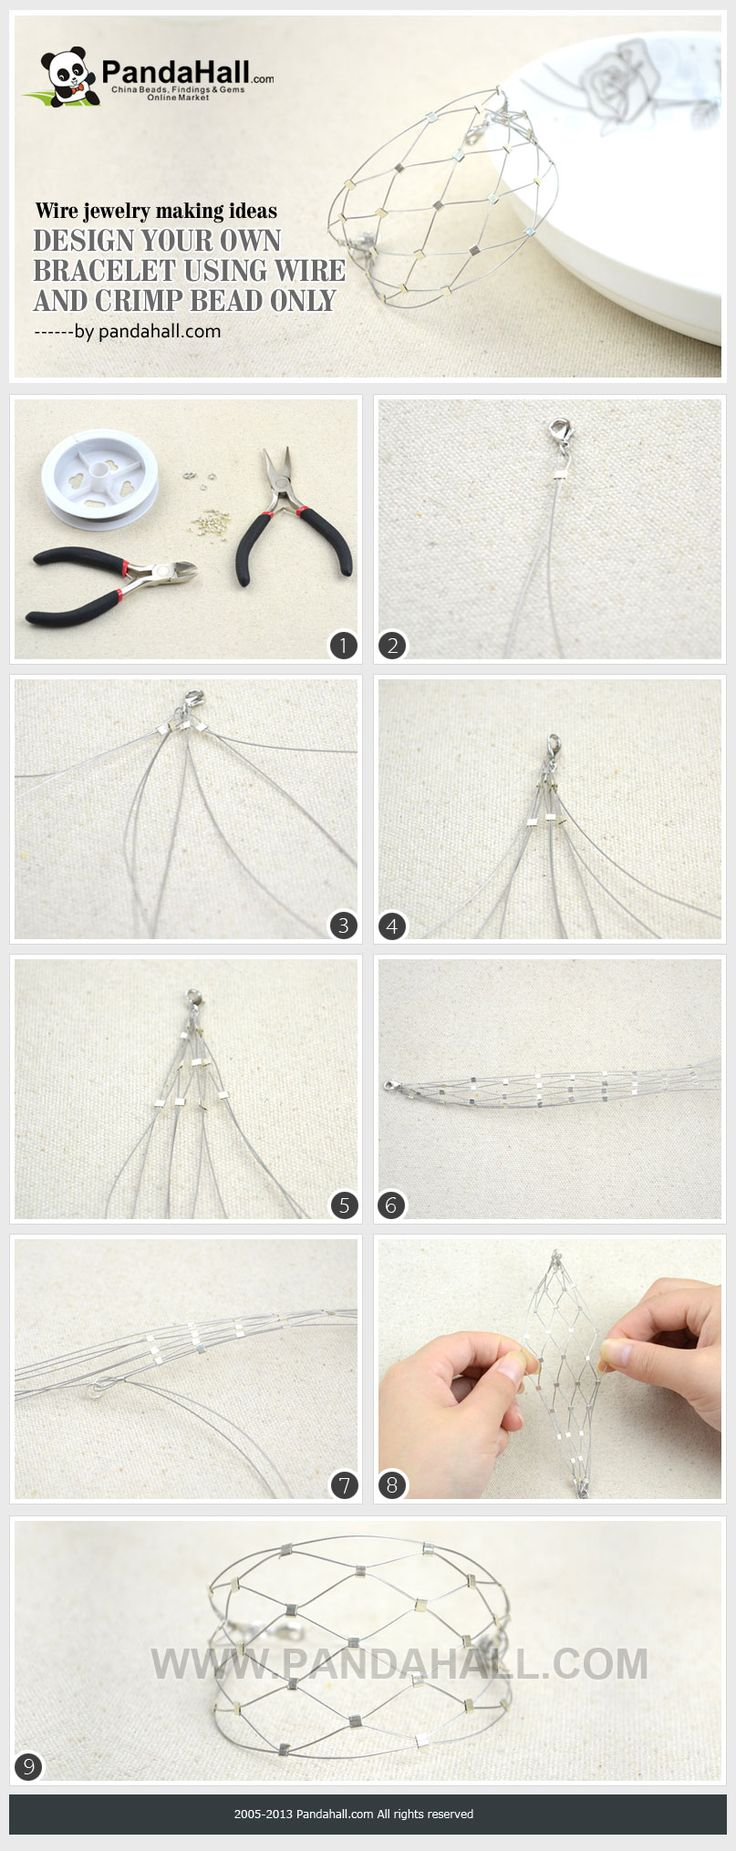 Wire Jewelry Making Ideas-Design Your Own Bracelet Using Wire and Crimp Beads Only from pandahall.com